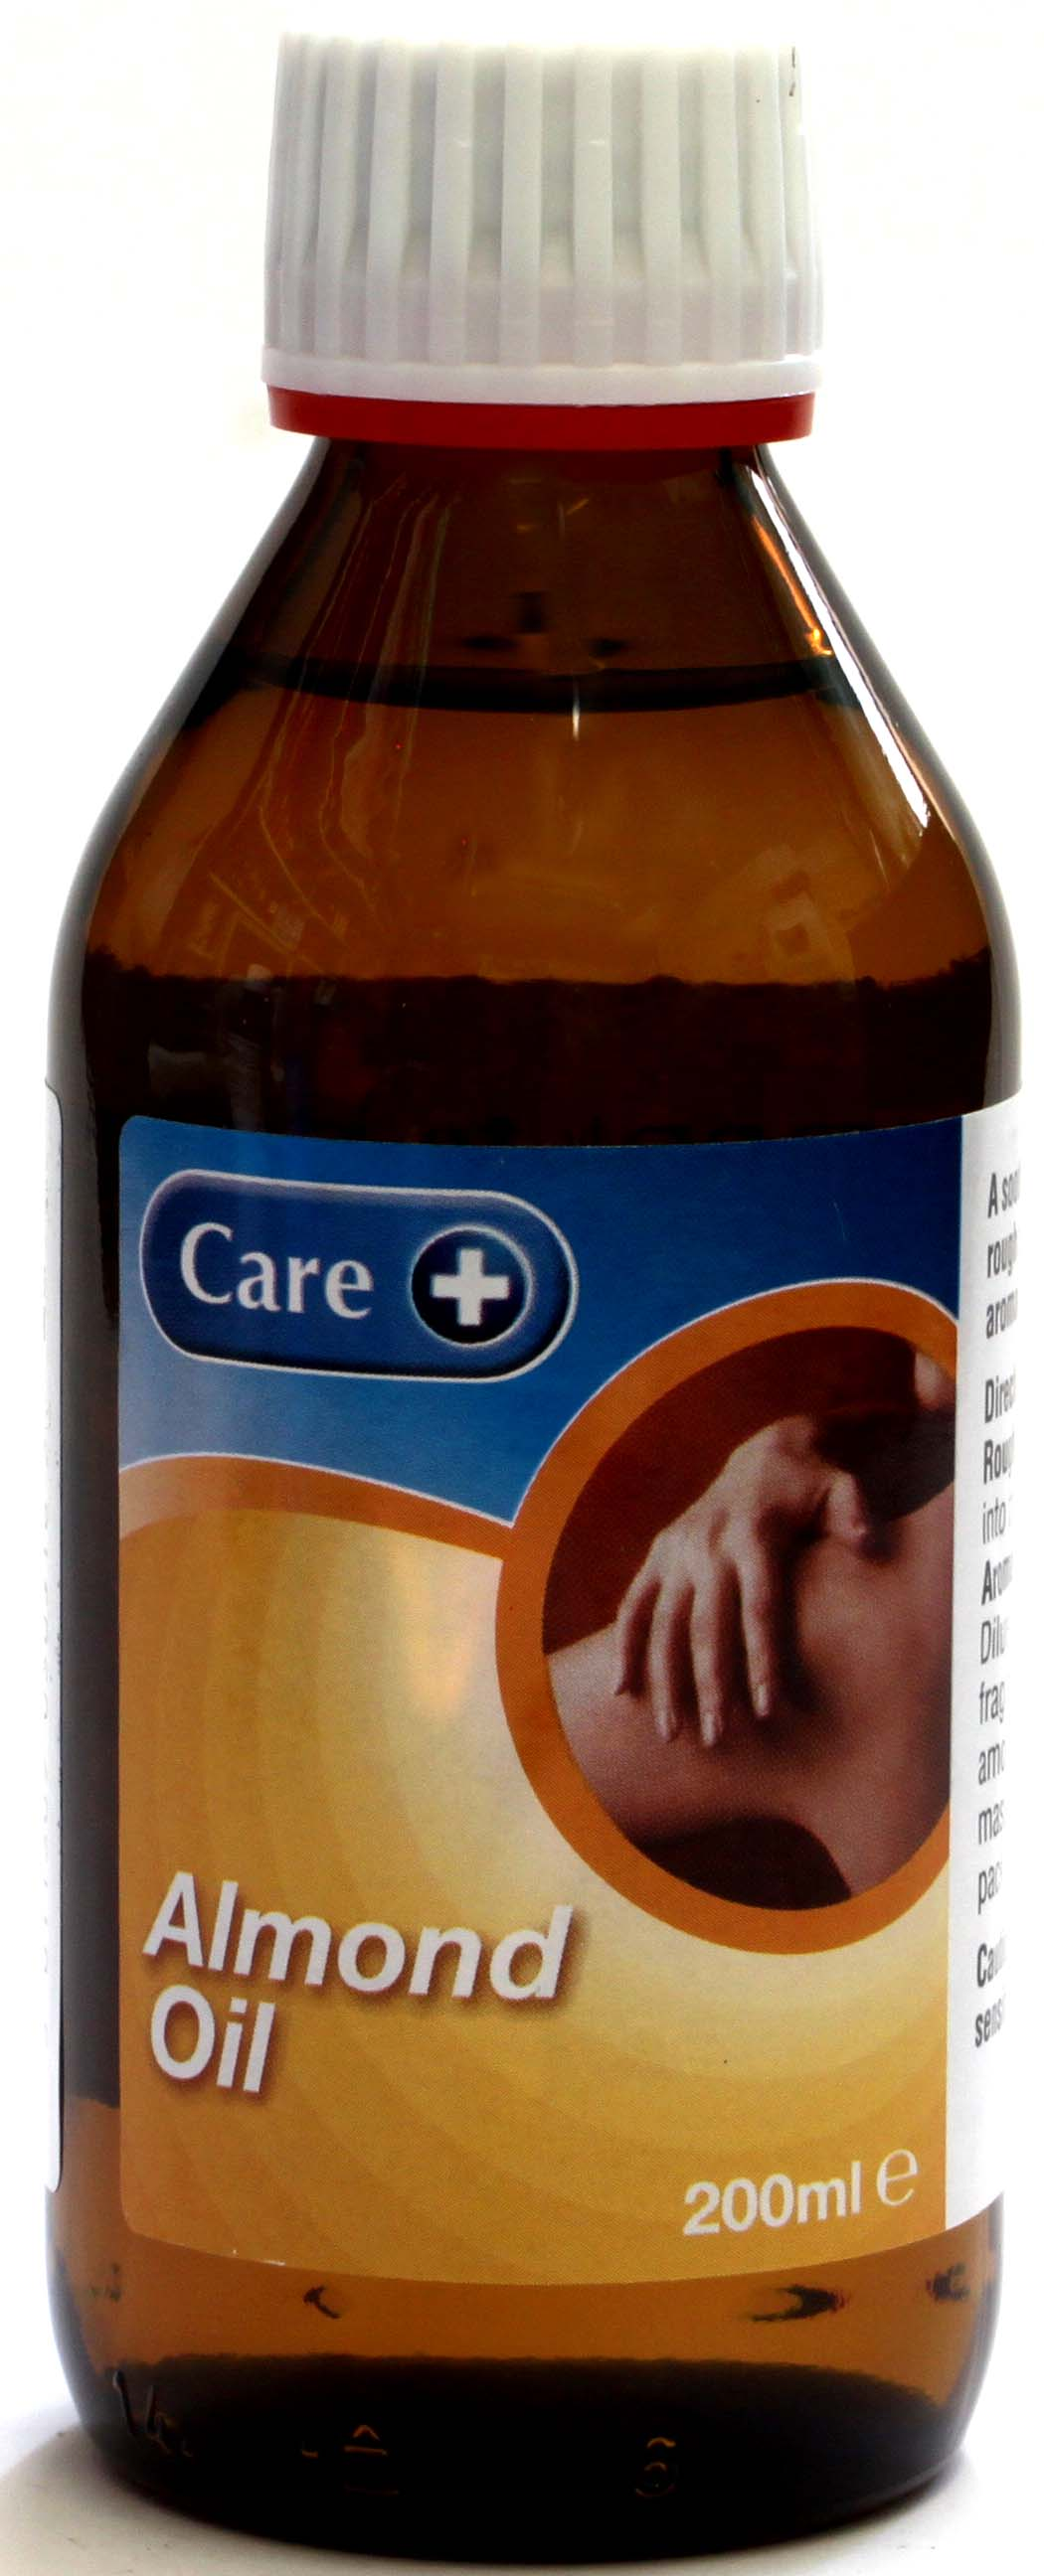 Almond Oil (Care) 200ml